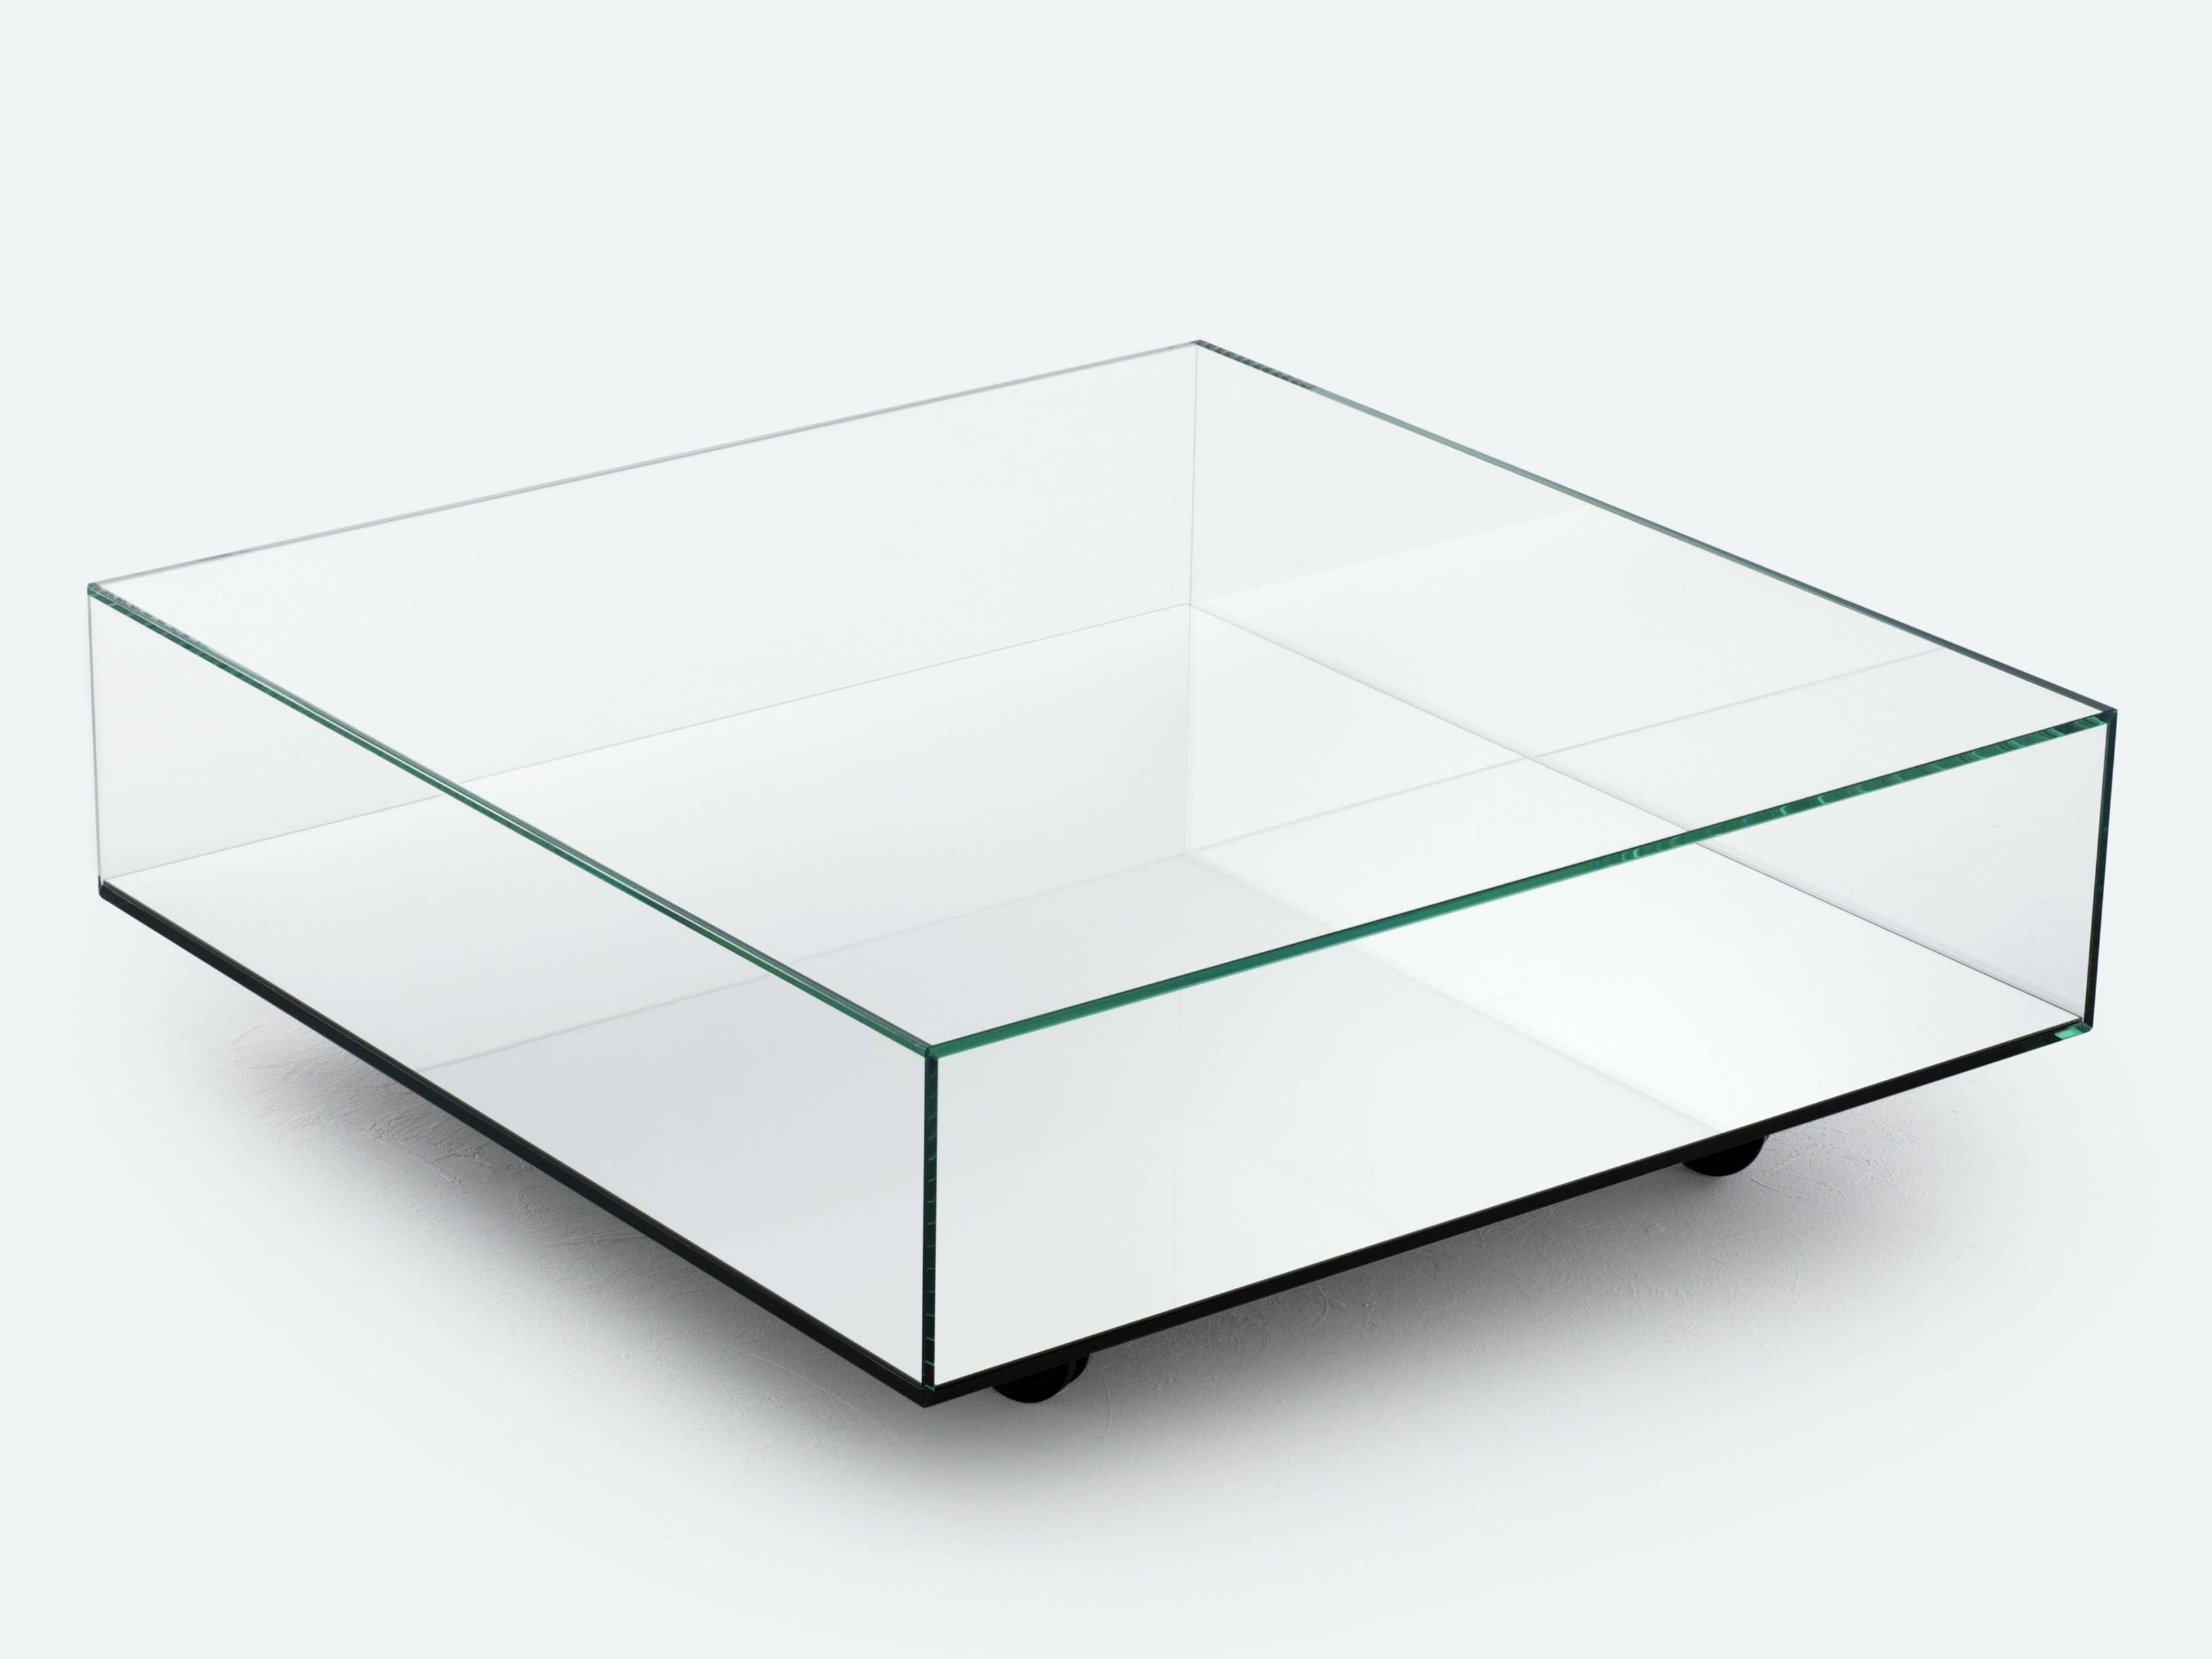 Small Coffee Table On Wheels. Coffee Table With Storage Small inside Glass Coffee Tables With Casters (Image 23 of 30)